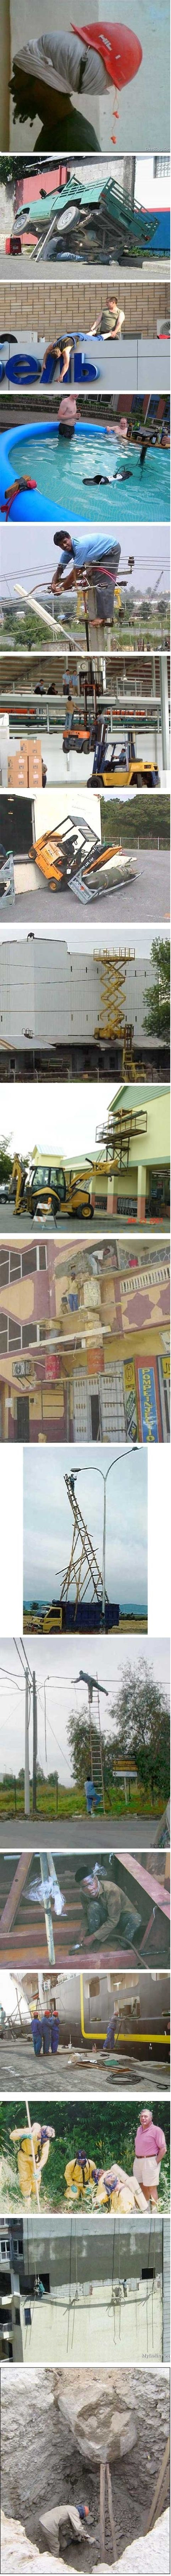 funny-compilation-pics-safety-first